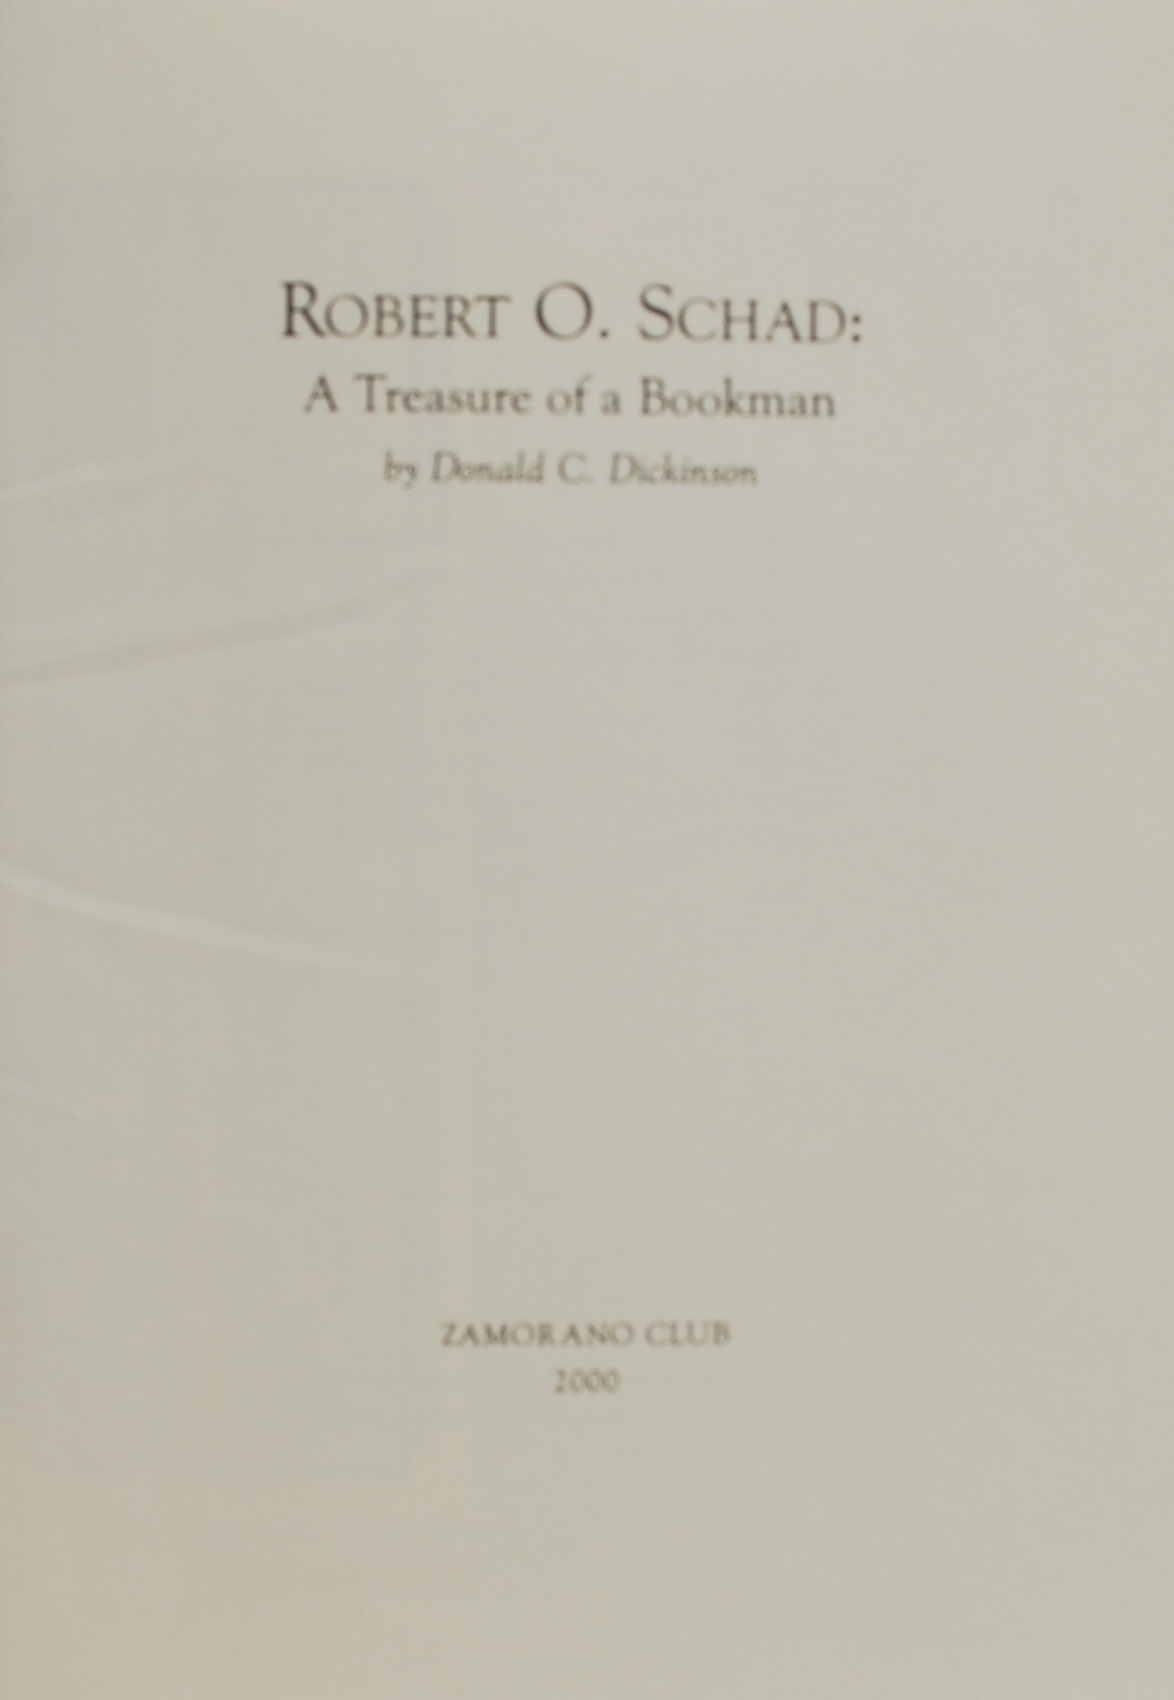 Image for Robert O. Schad: A Treasure of a Bookman